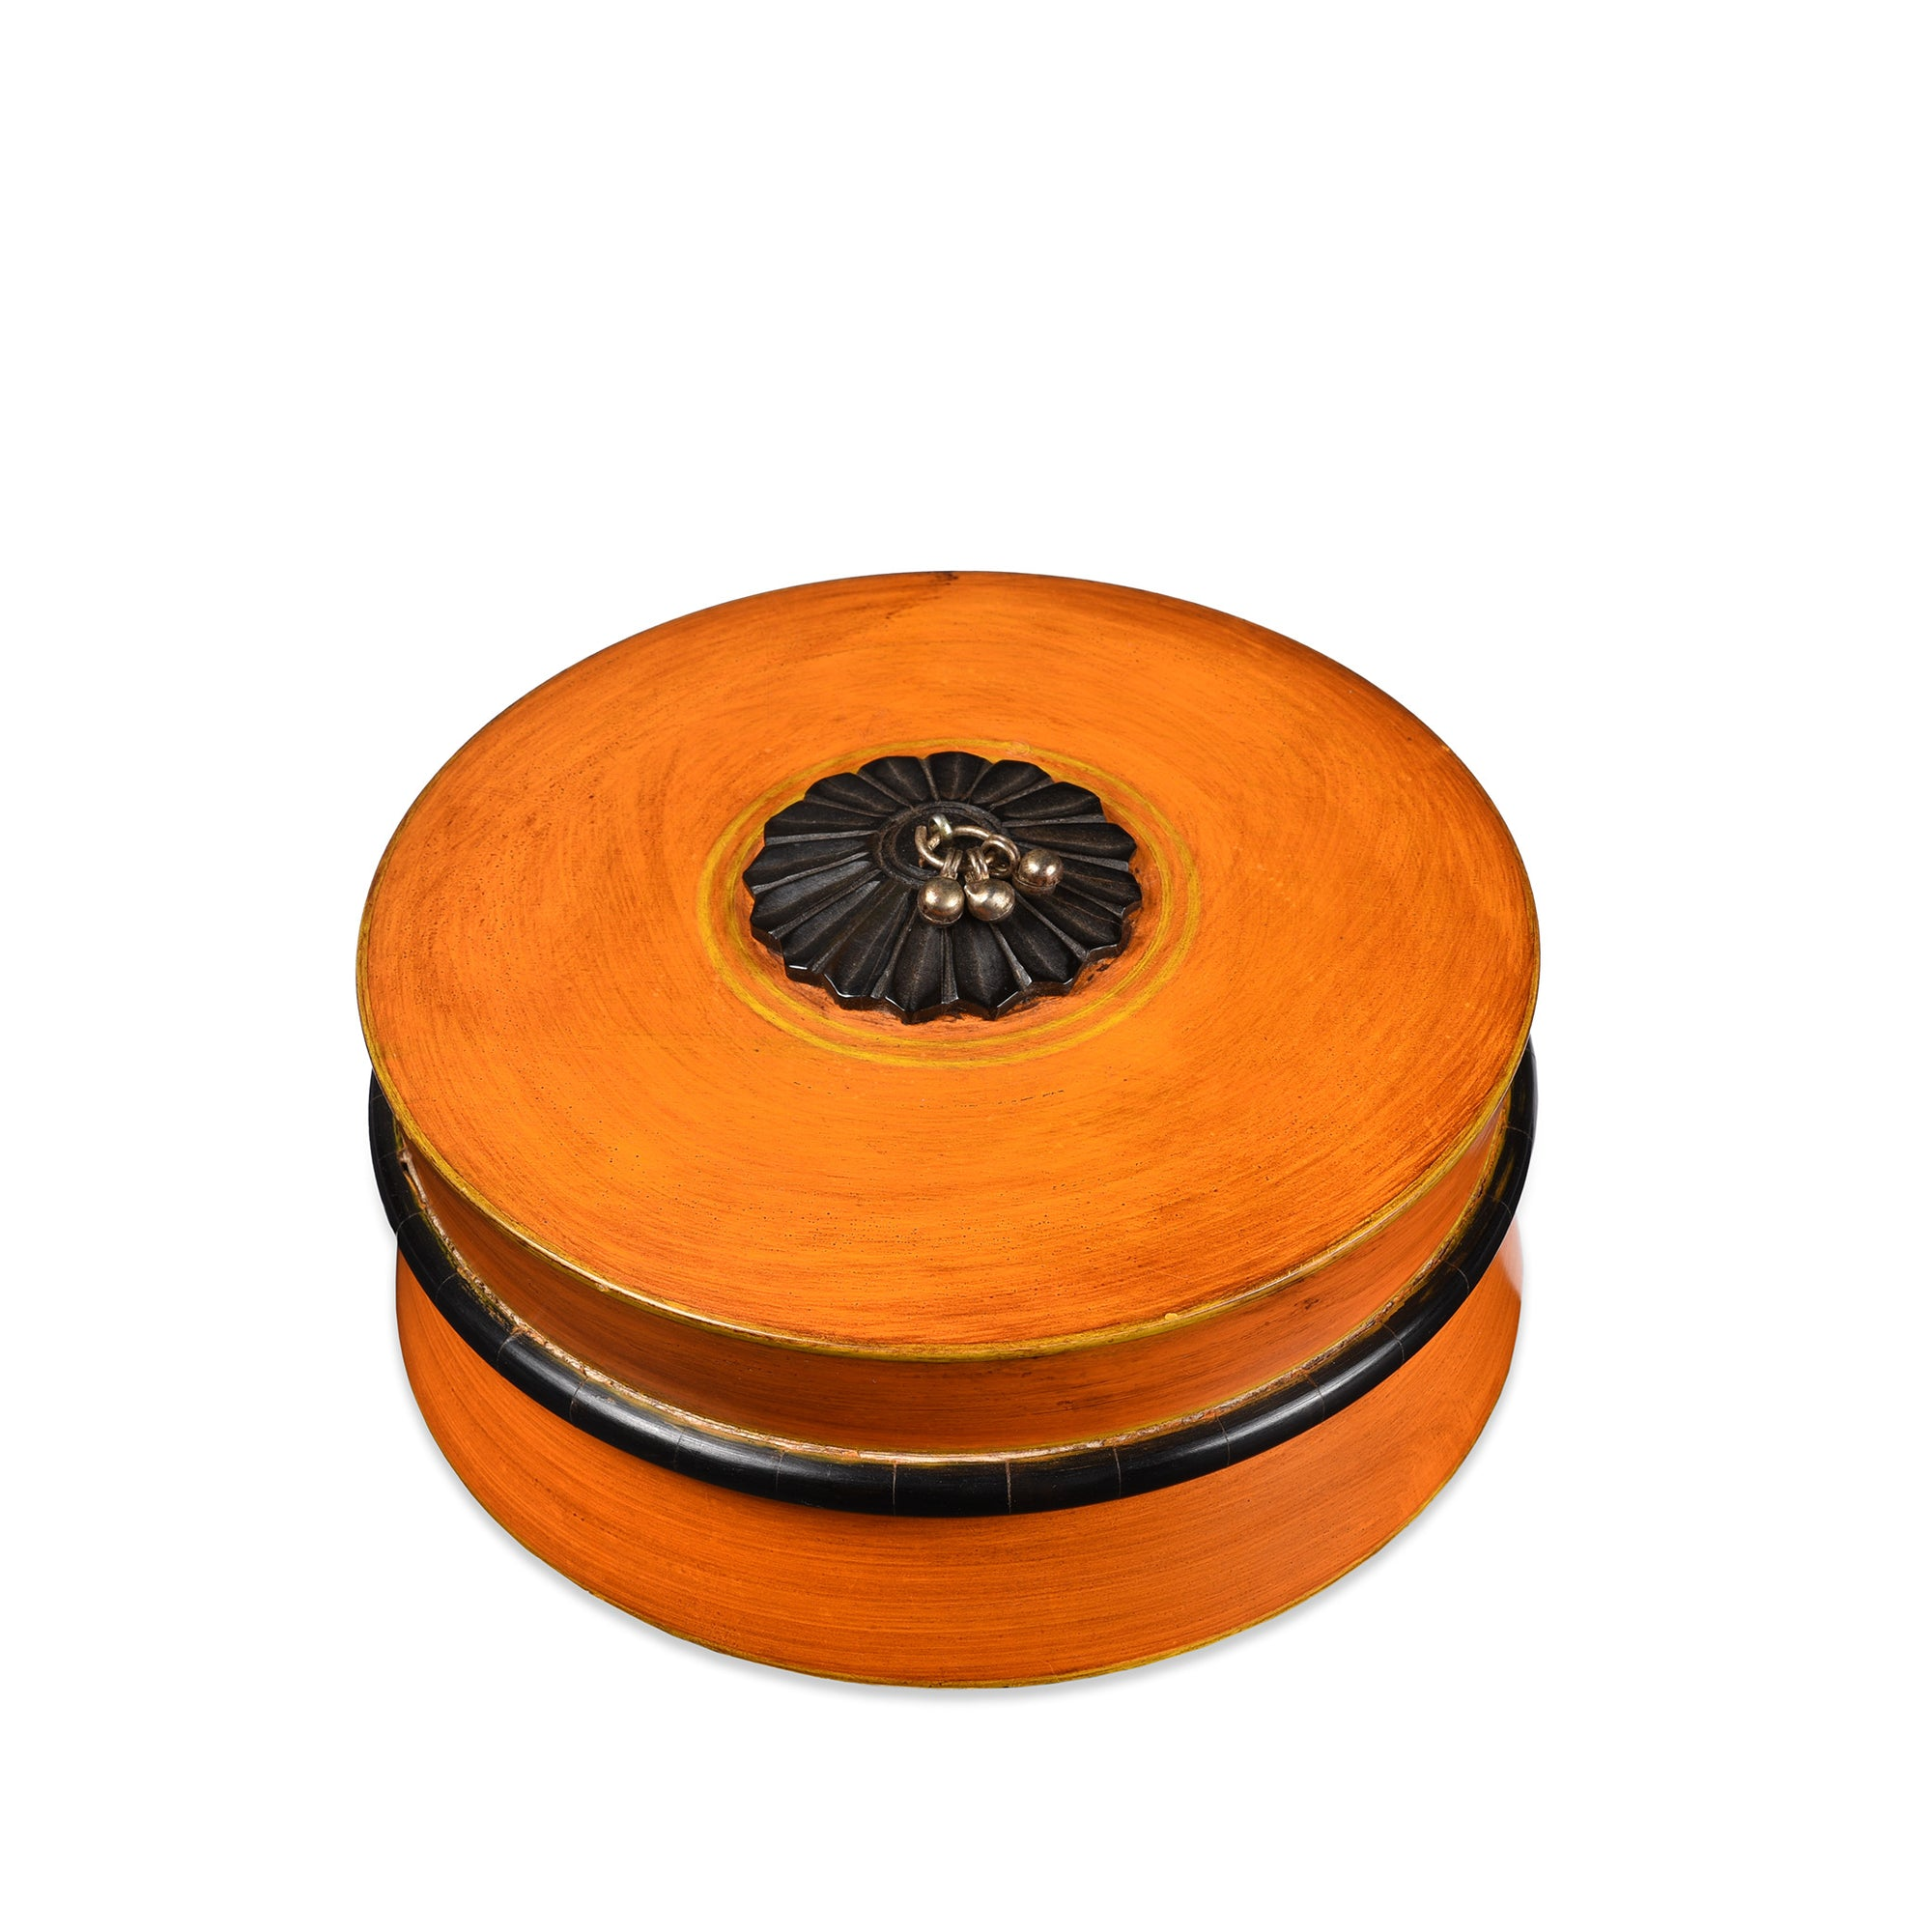 Hand Made Lacquer Pot From Rajasthan - Orange - 19 x 19 x 9.5 (w x d x h cms) - A5024V2